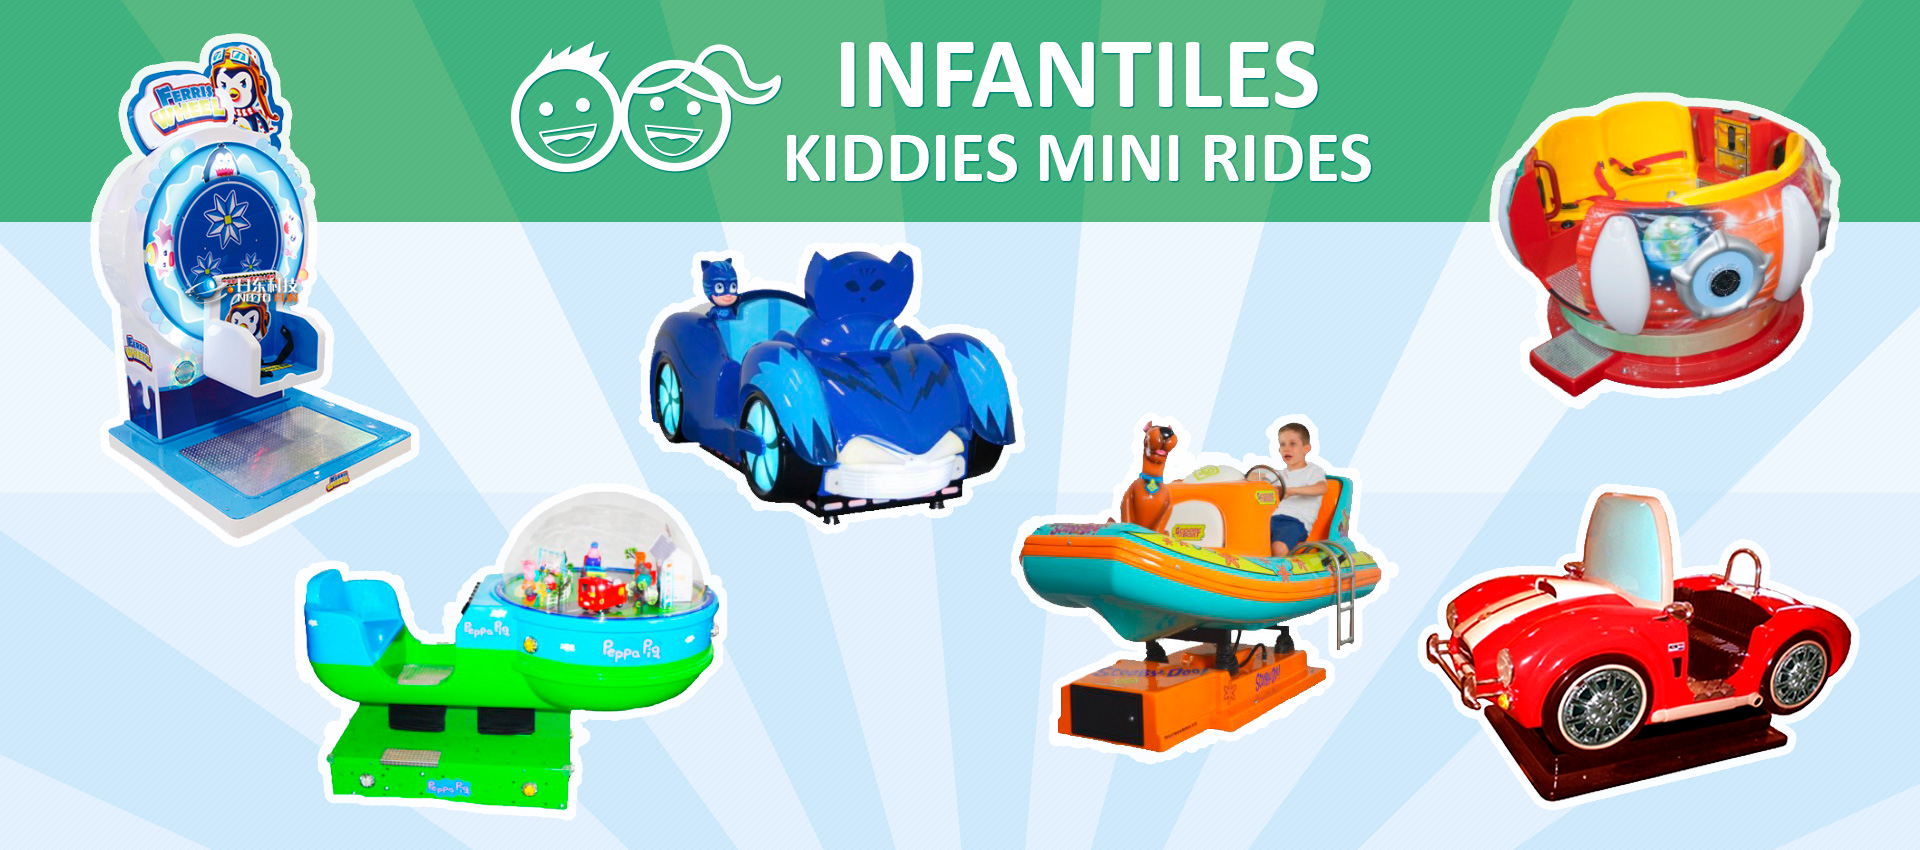 Infantiles Kiddies Mini Rides